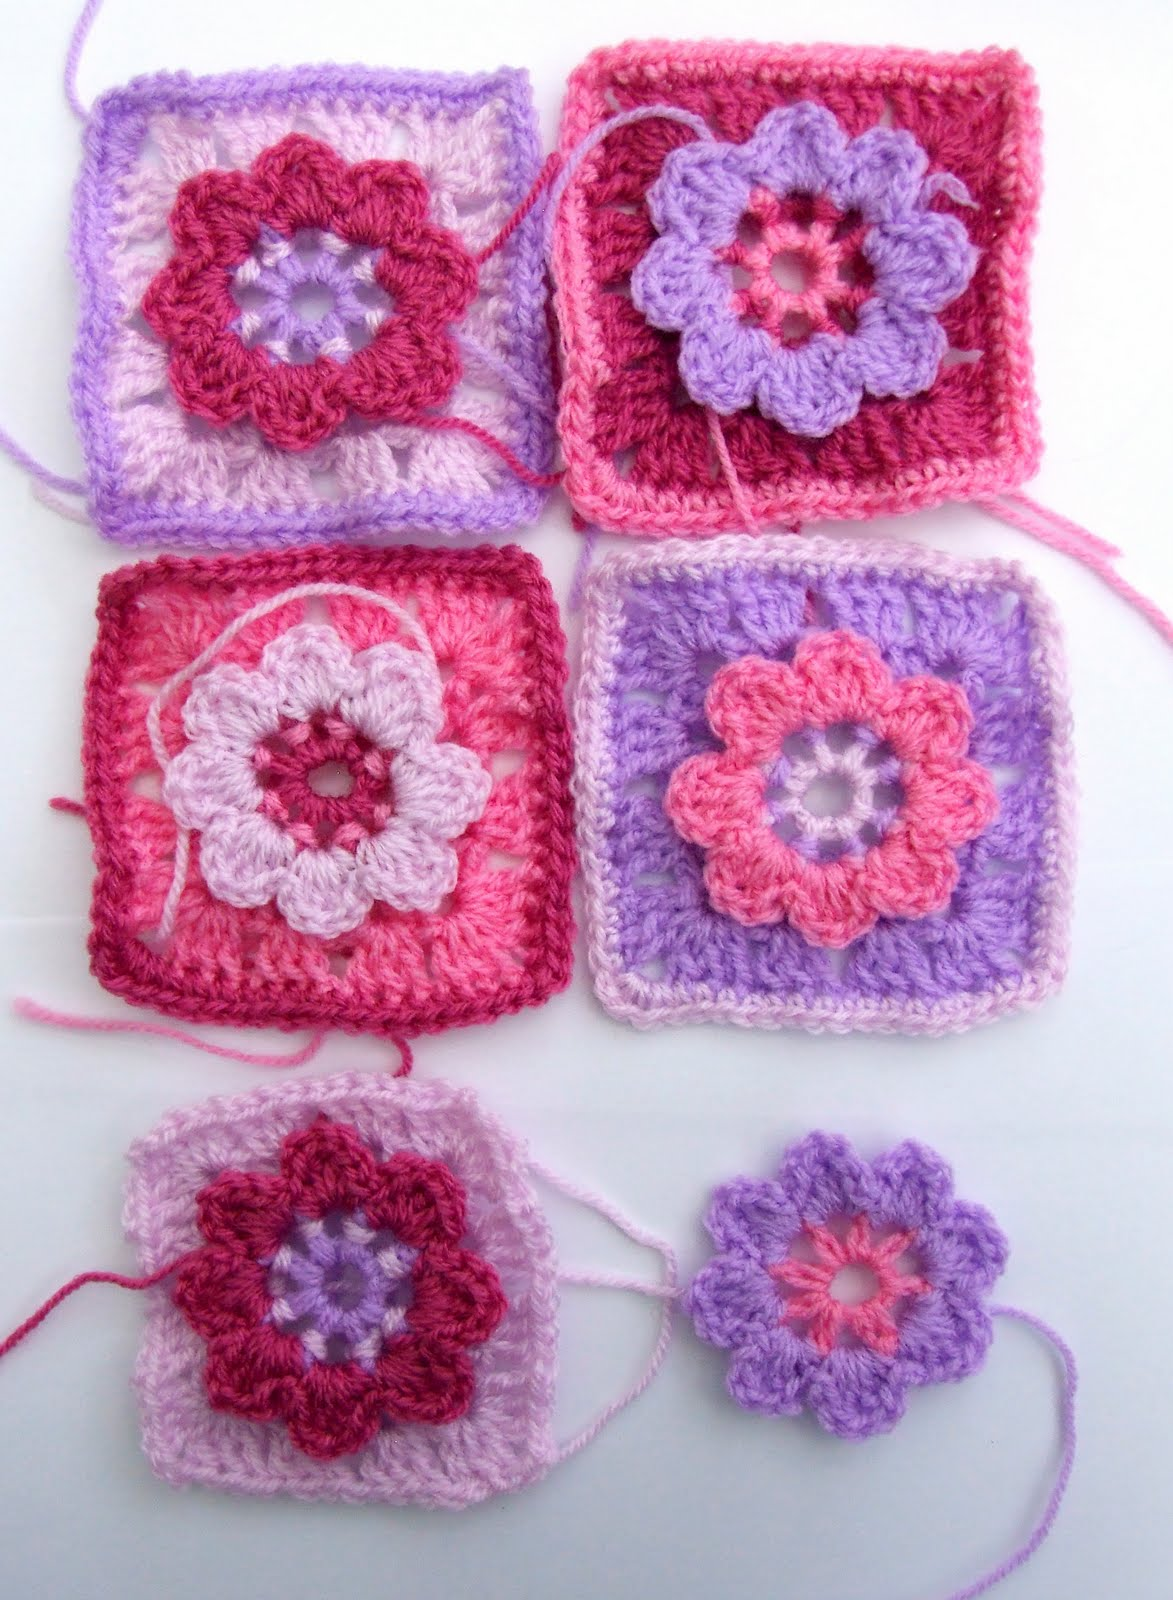 Granny Squares-Motifs-Applique - Free Patterns: Half-Granny Square